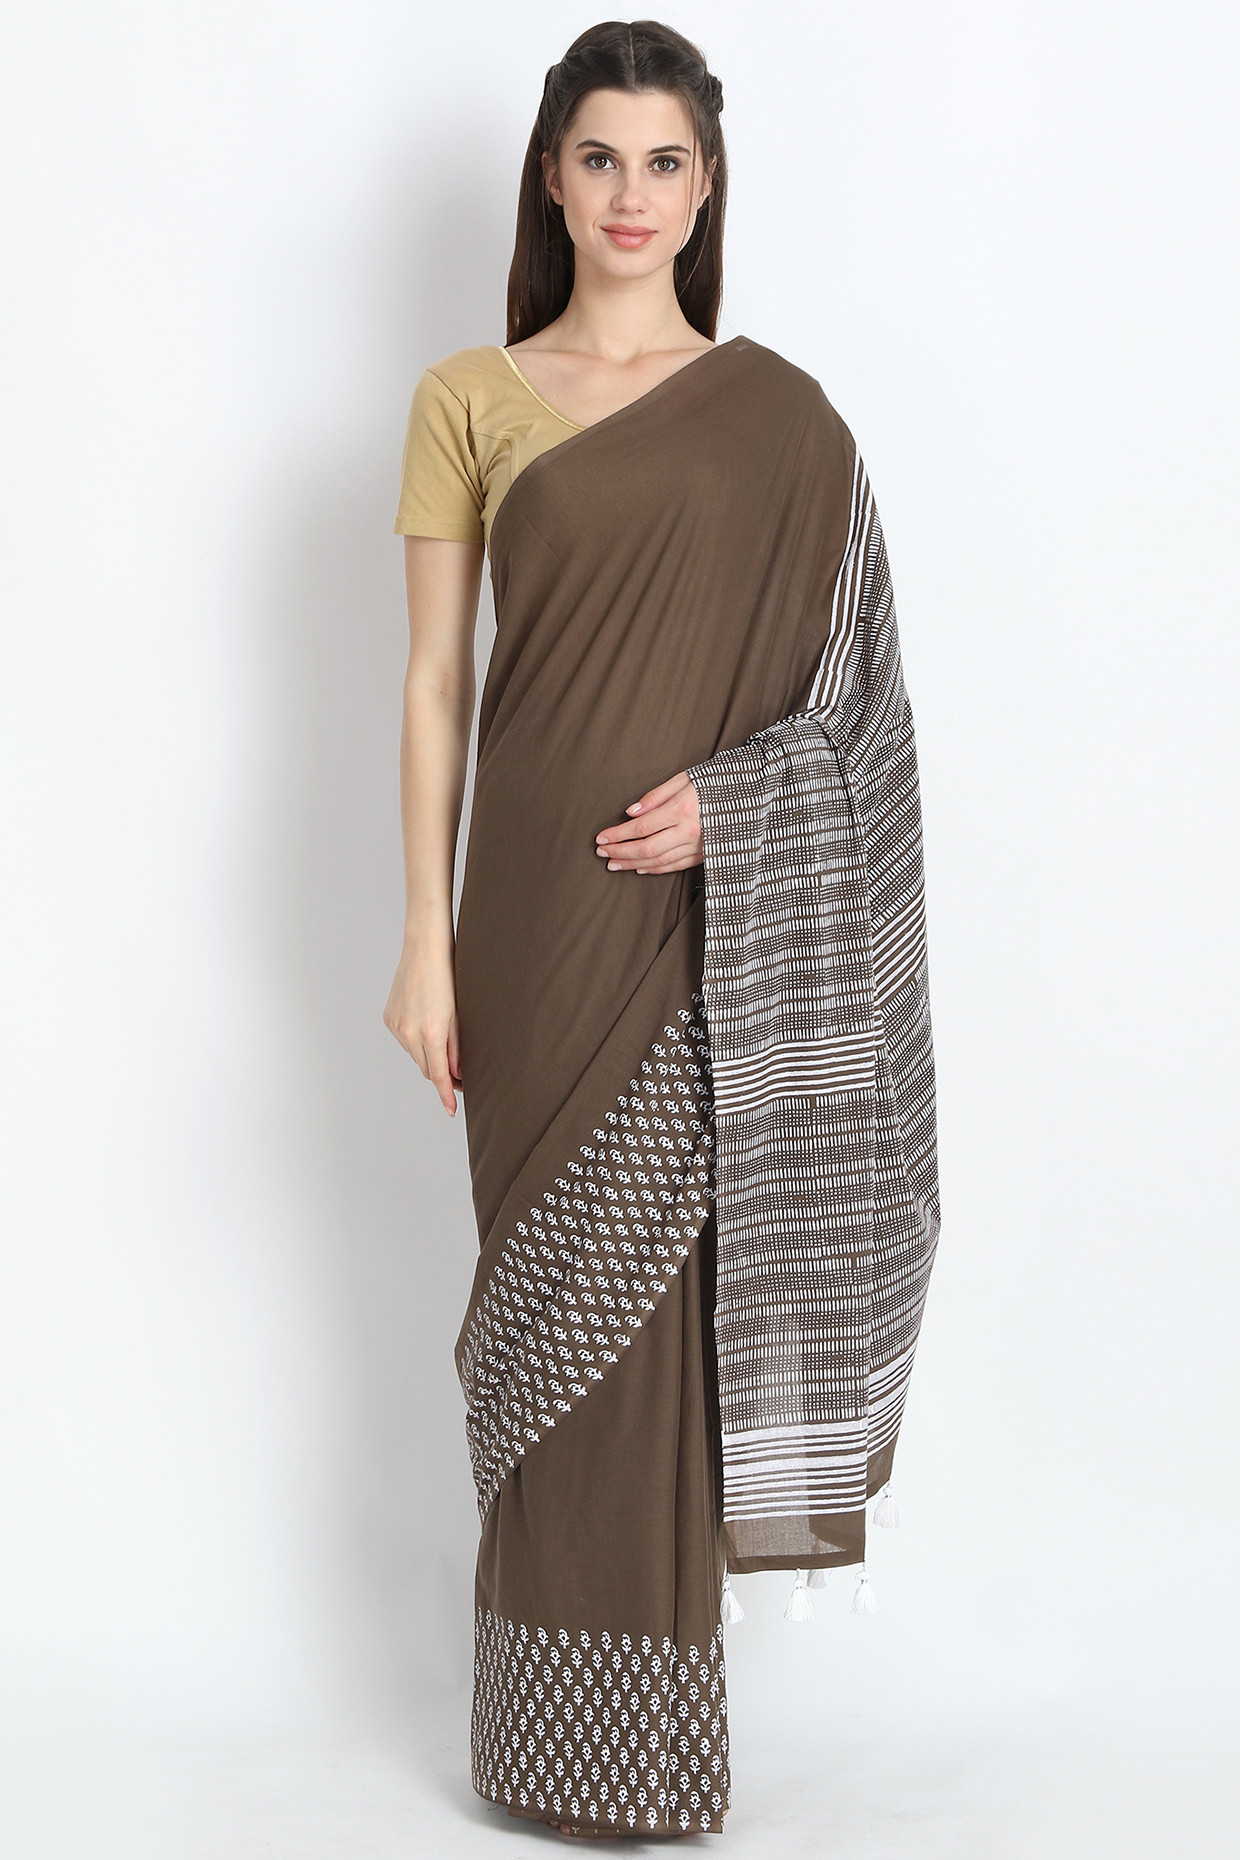 Hand Block Printed Cotton Mulmul Saree In Olive Green by Palash